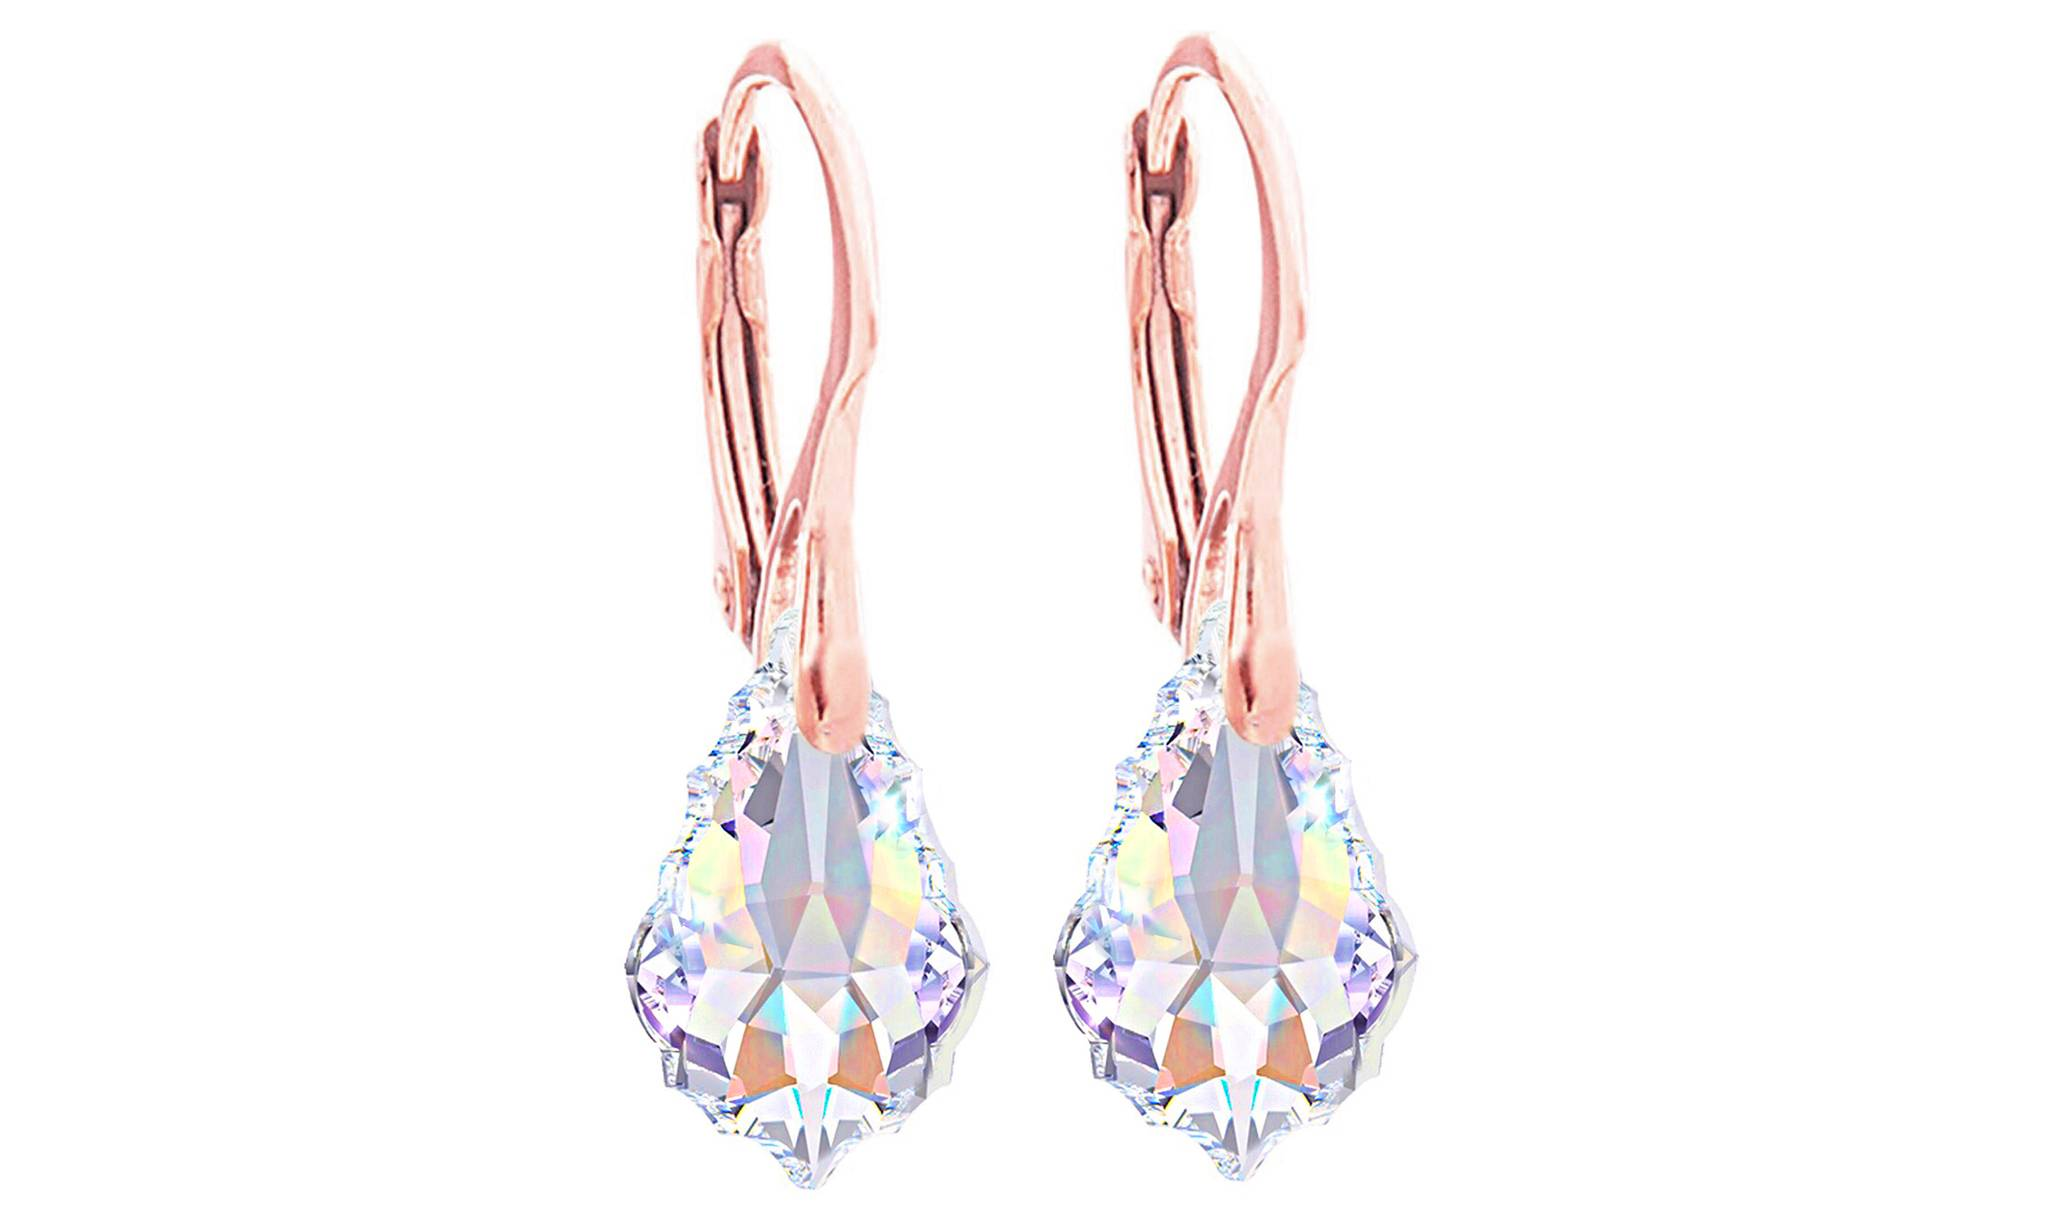 119.00 Ah! Jewellery Baroque Necklace Earrings Set: Aurore Boreale / Earrings / Rose Gold-Coloured